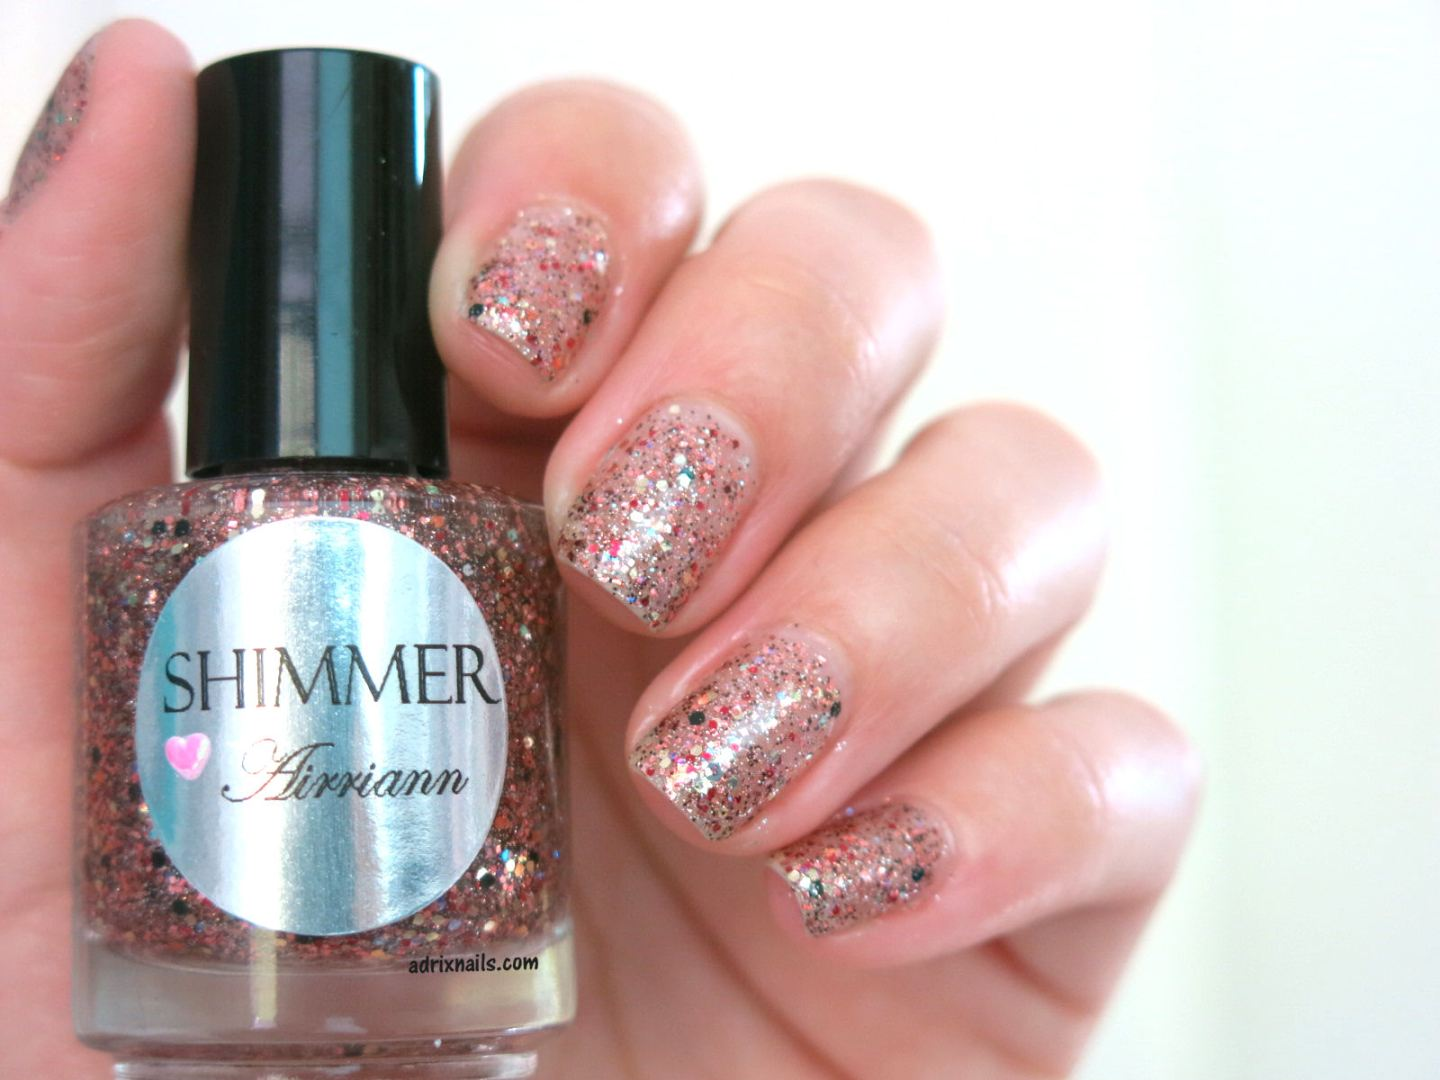 shimmer polish, glitter, airriann, colores de otoño, autumn colors, fall colors, esmaltes, uñas, OPI, Every Month Is Oktoberfest, comparacion, swatches comparision, color comparision, chanel dupe, swatches, nails, nail art, nail polish, colores, review, adrix nails, blog mexicano dedicado al nail art, blogueras mexicanas, mexican bloggers, blogs de méxico, nailpolishlove,